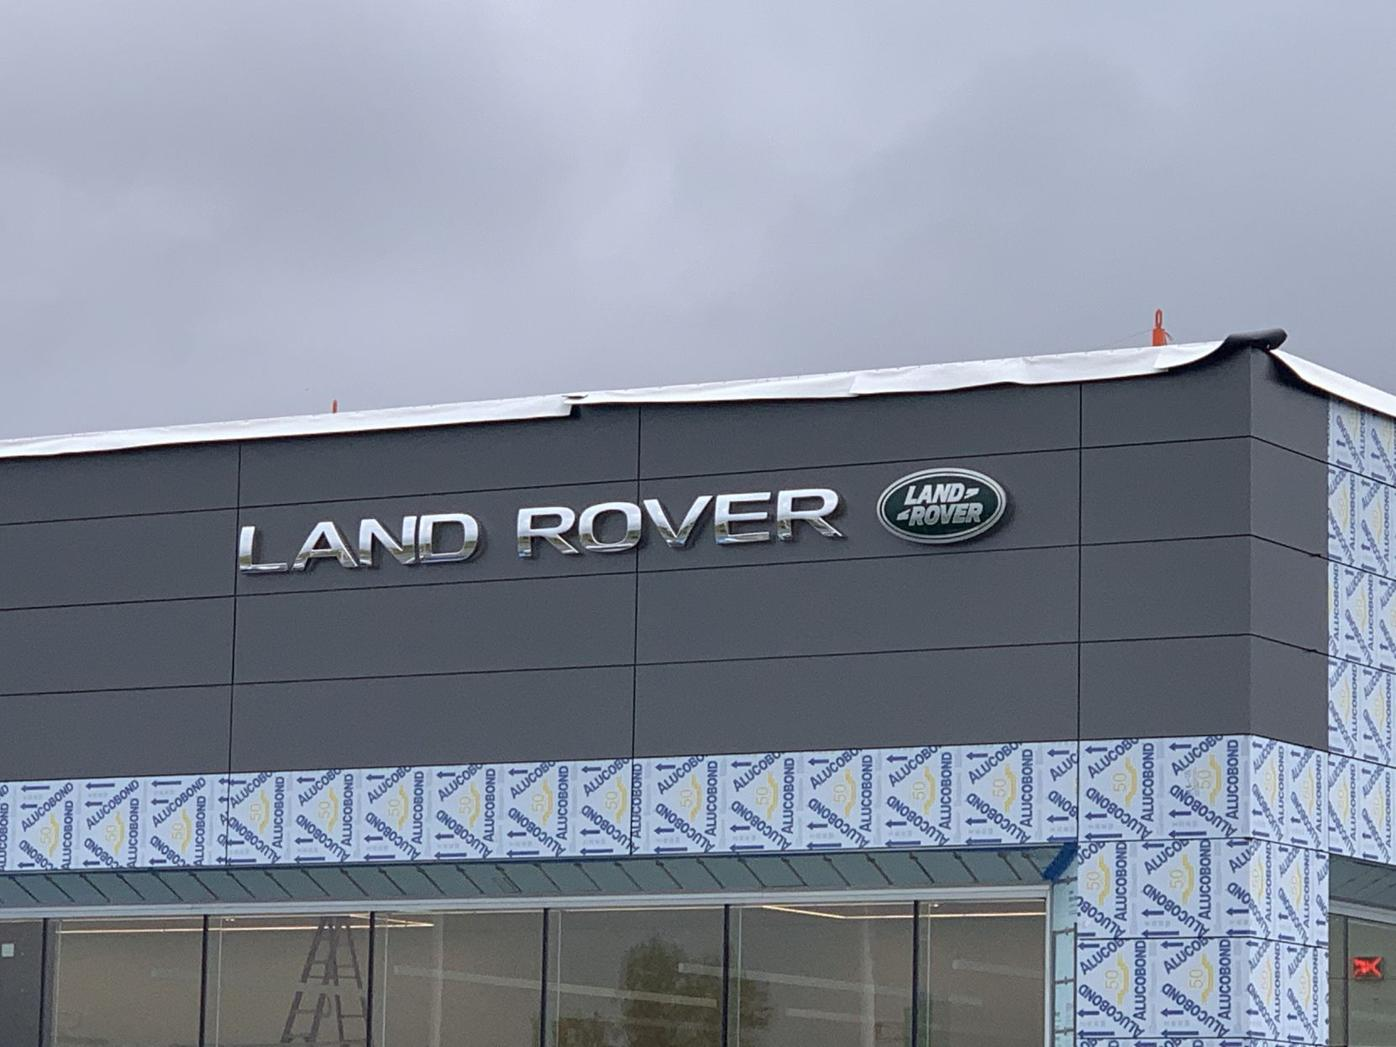 Land Rover side